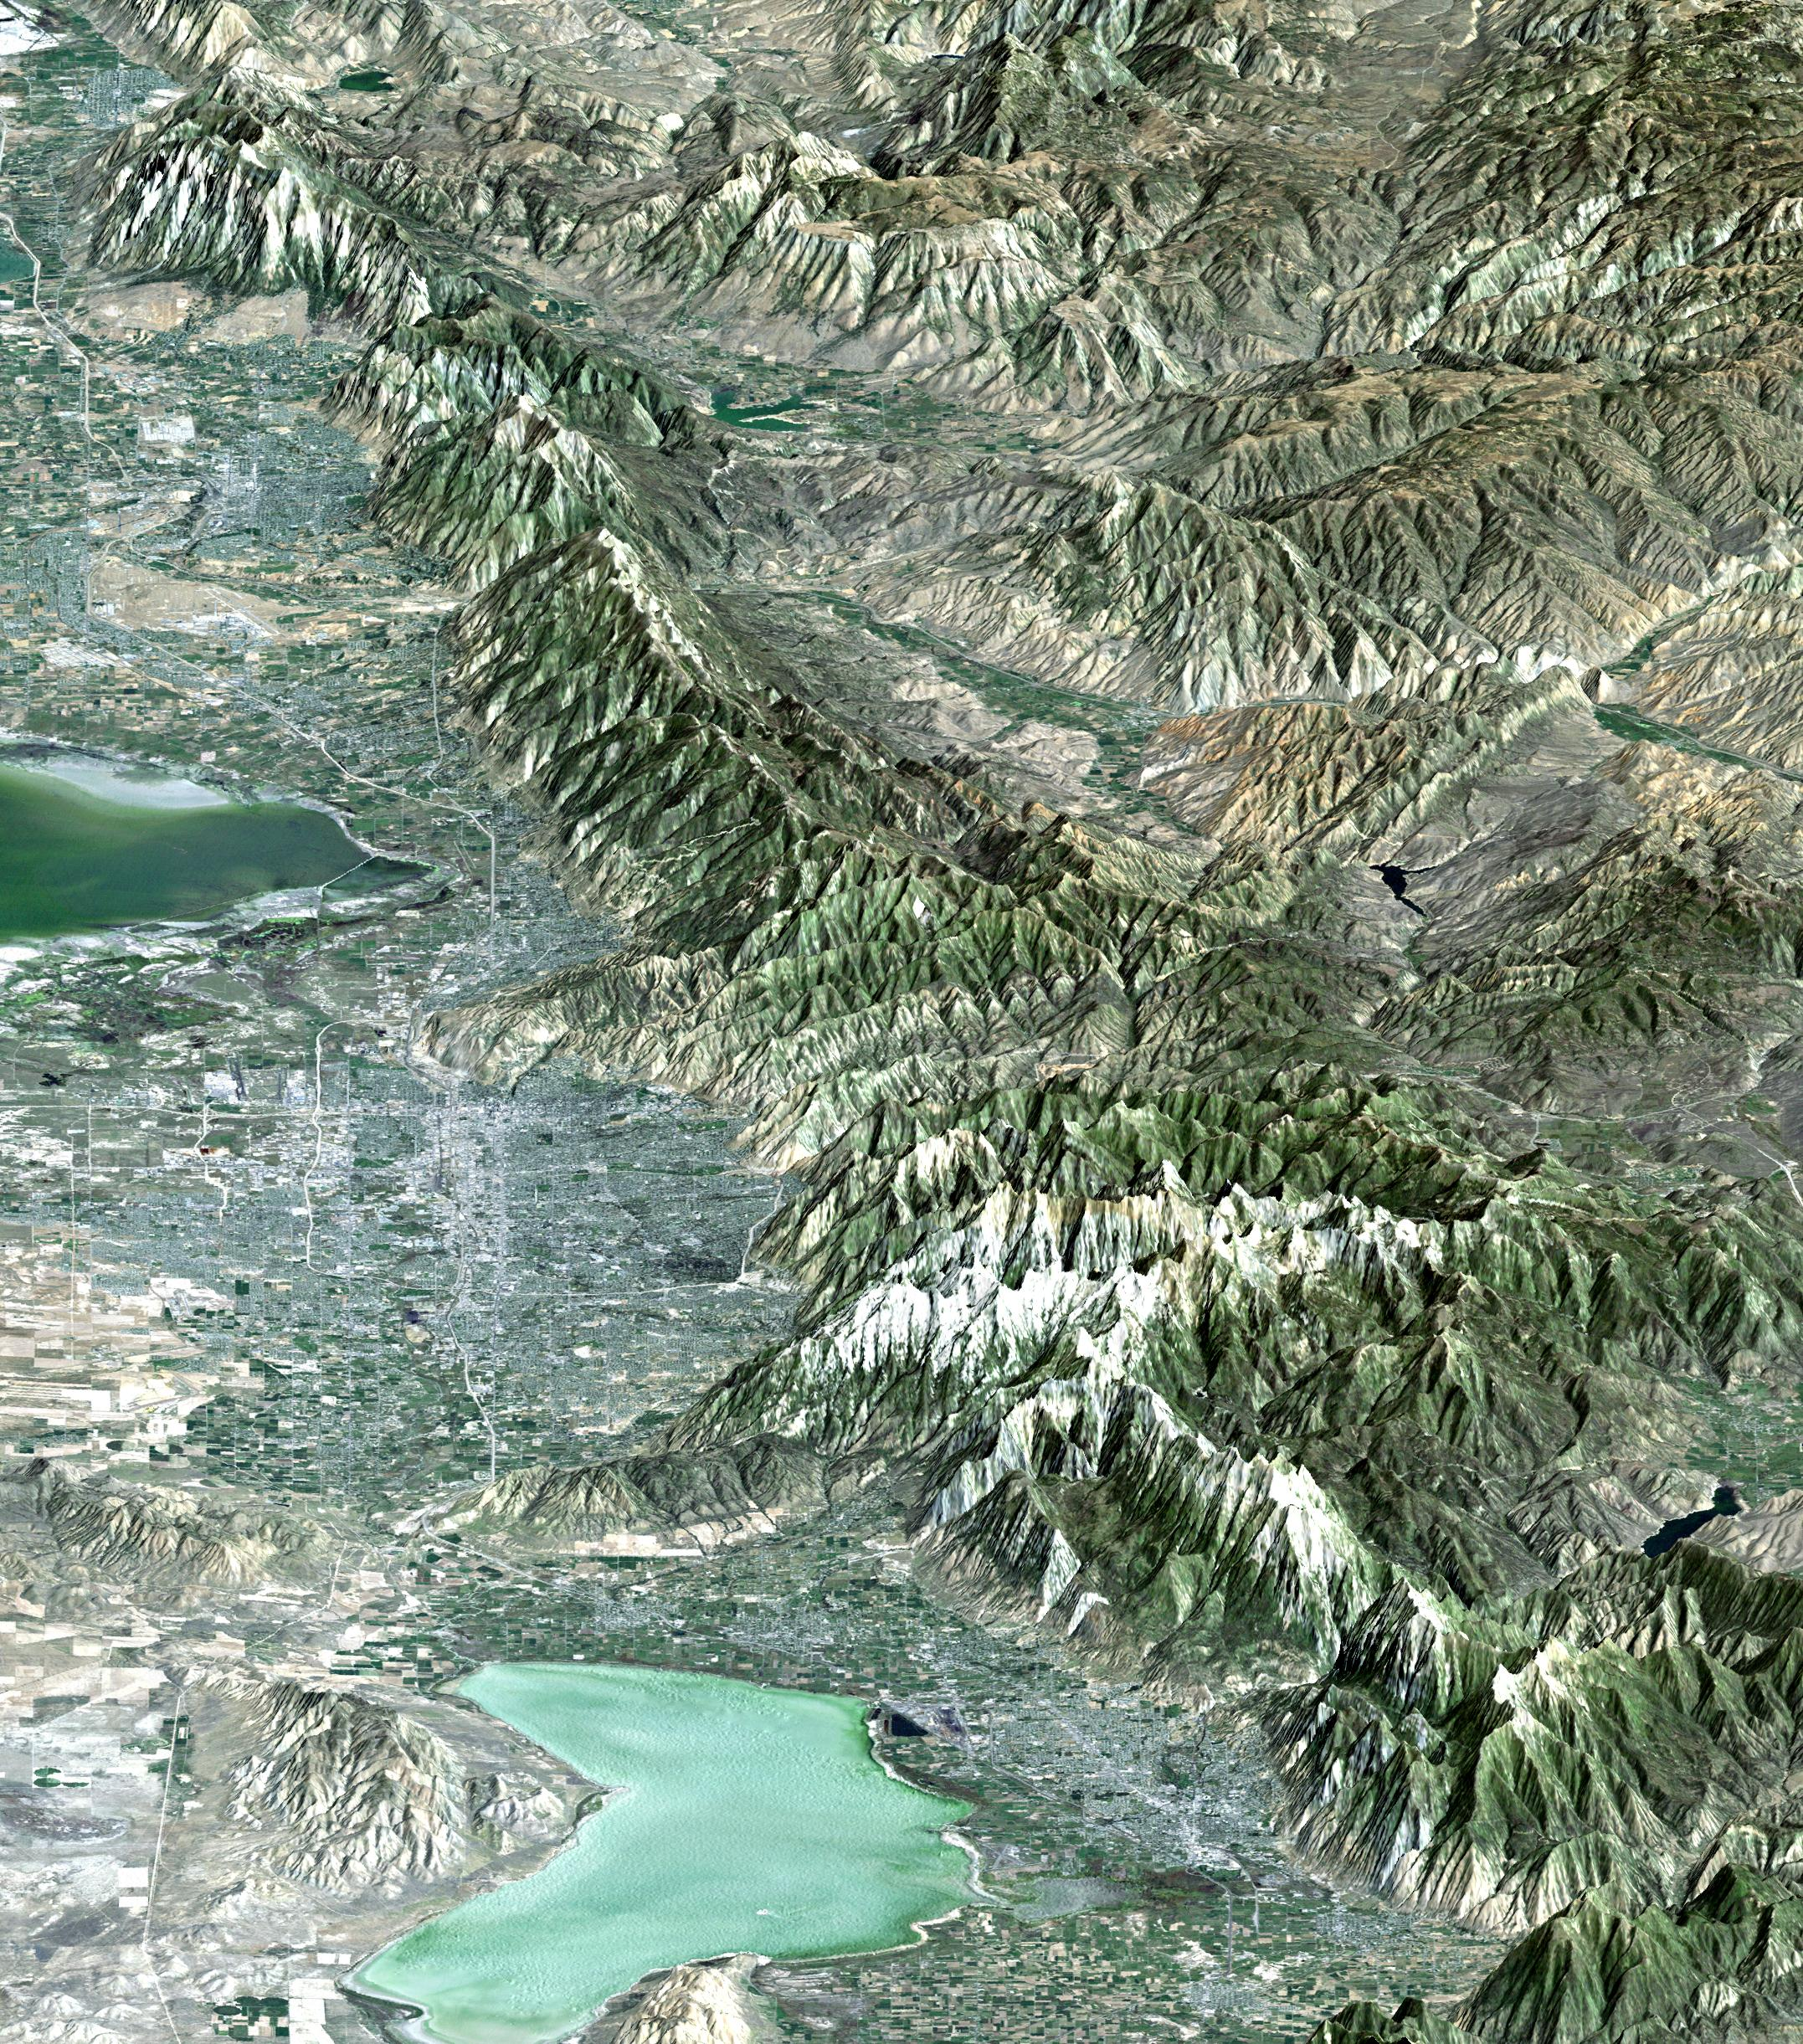 Space Images | Perspective View with Landsat Overlay, Salt Lake City